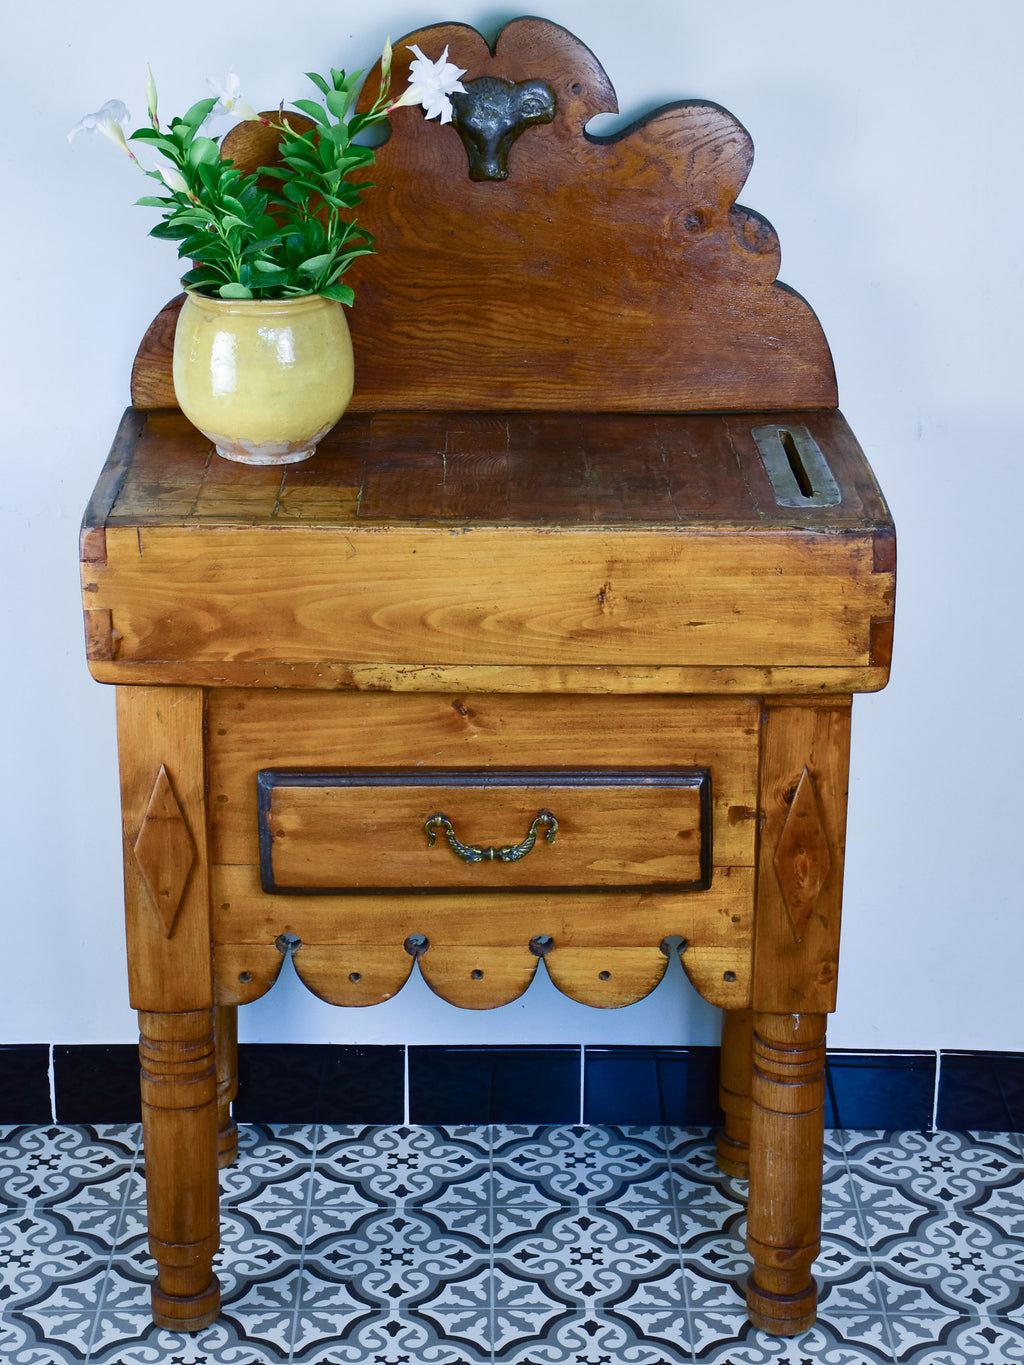 Vintage French Butcher's table